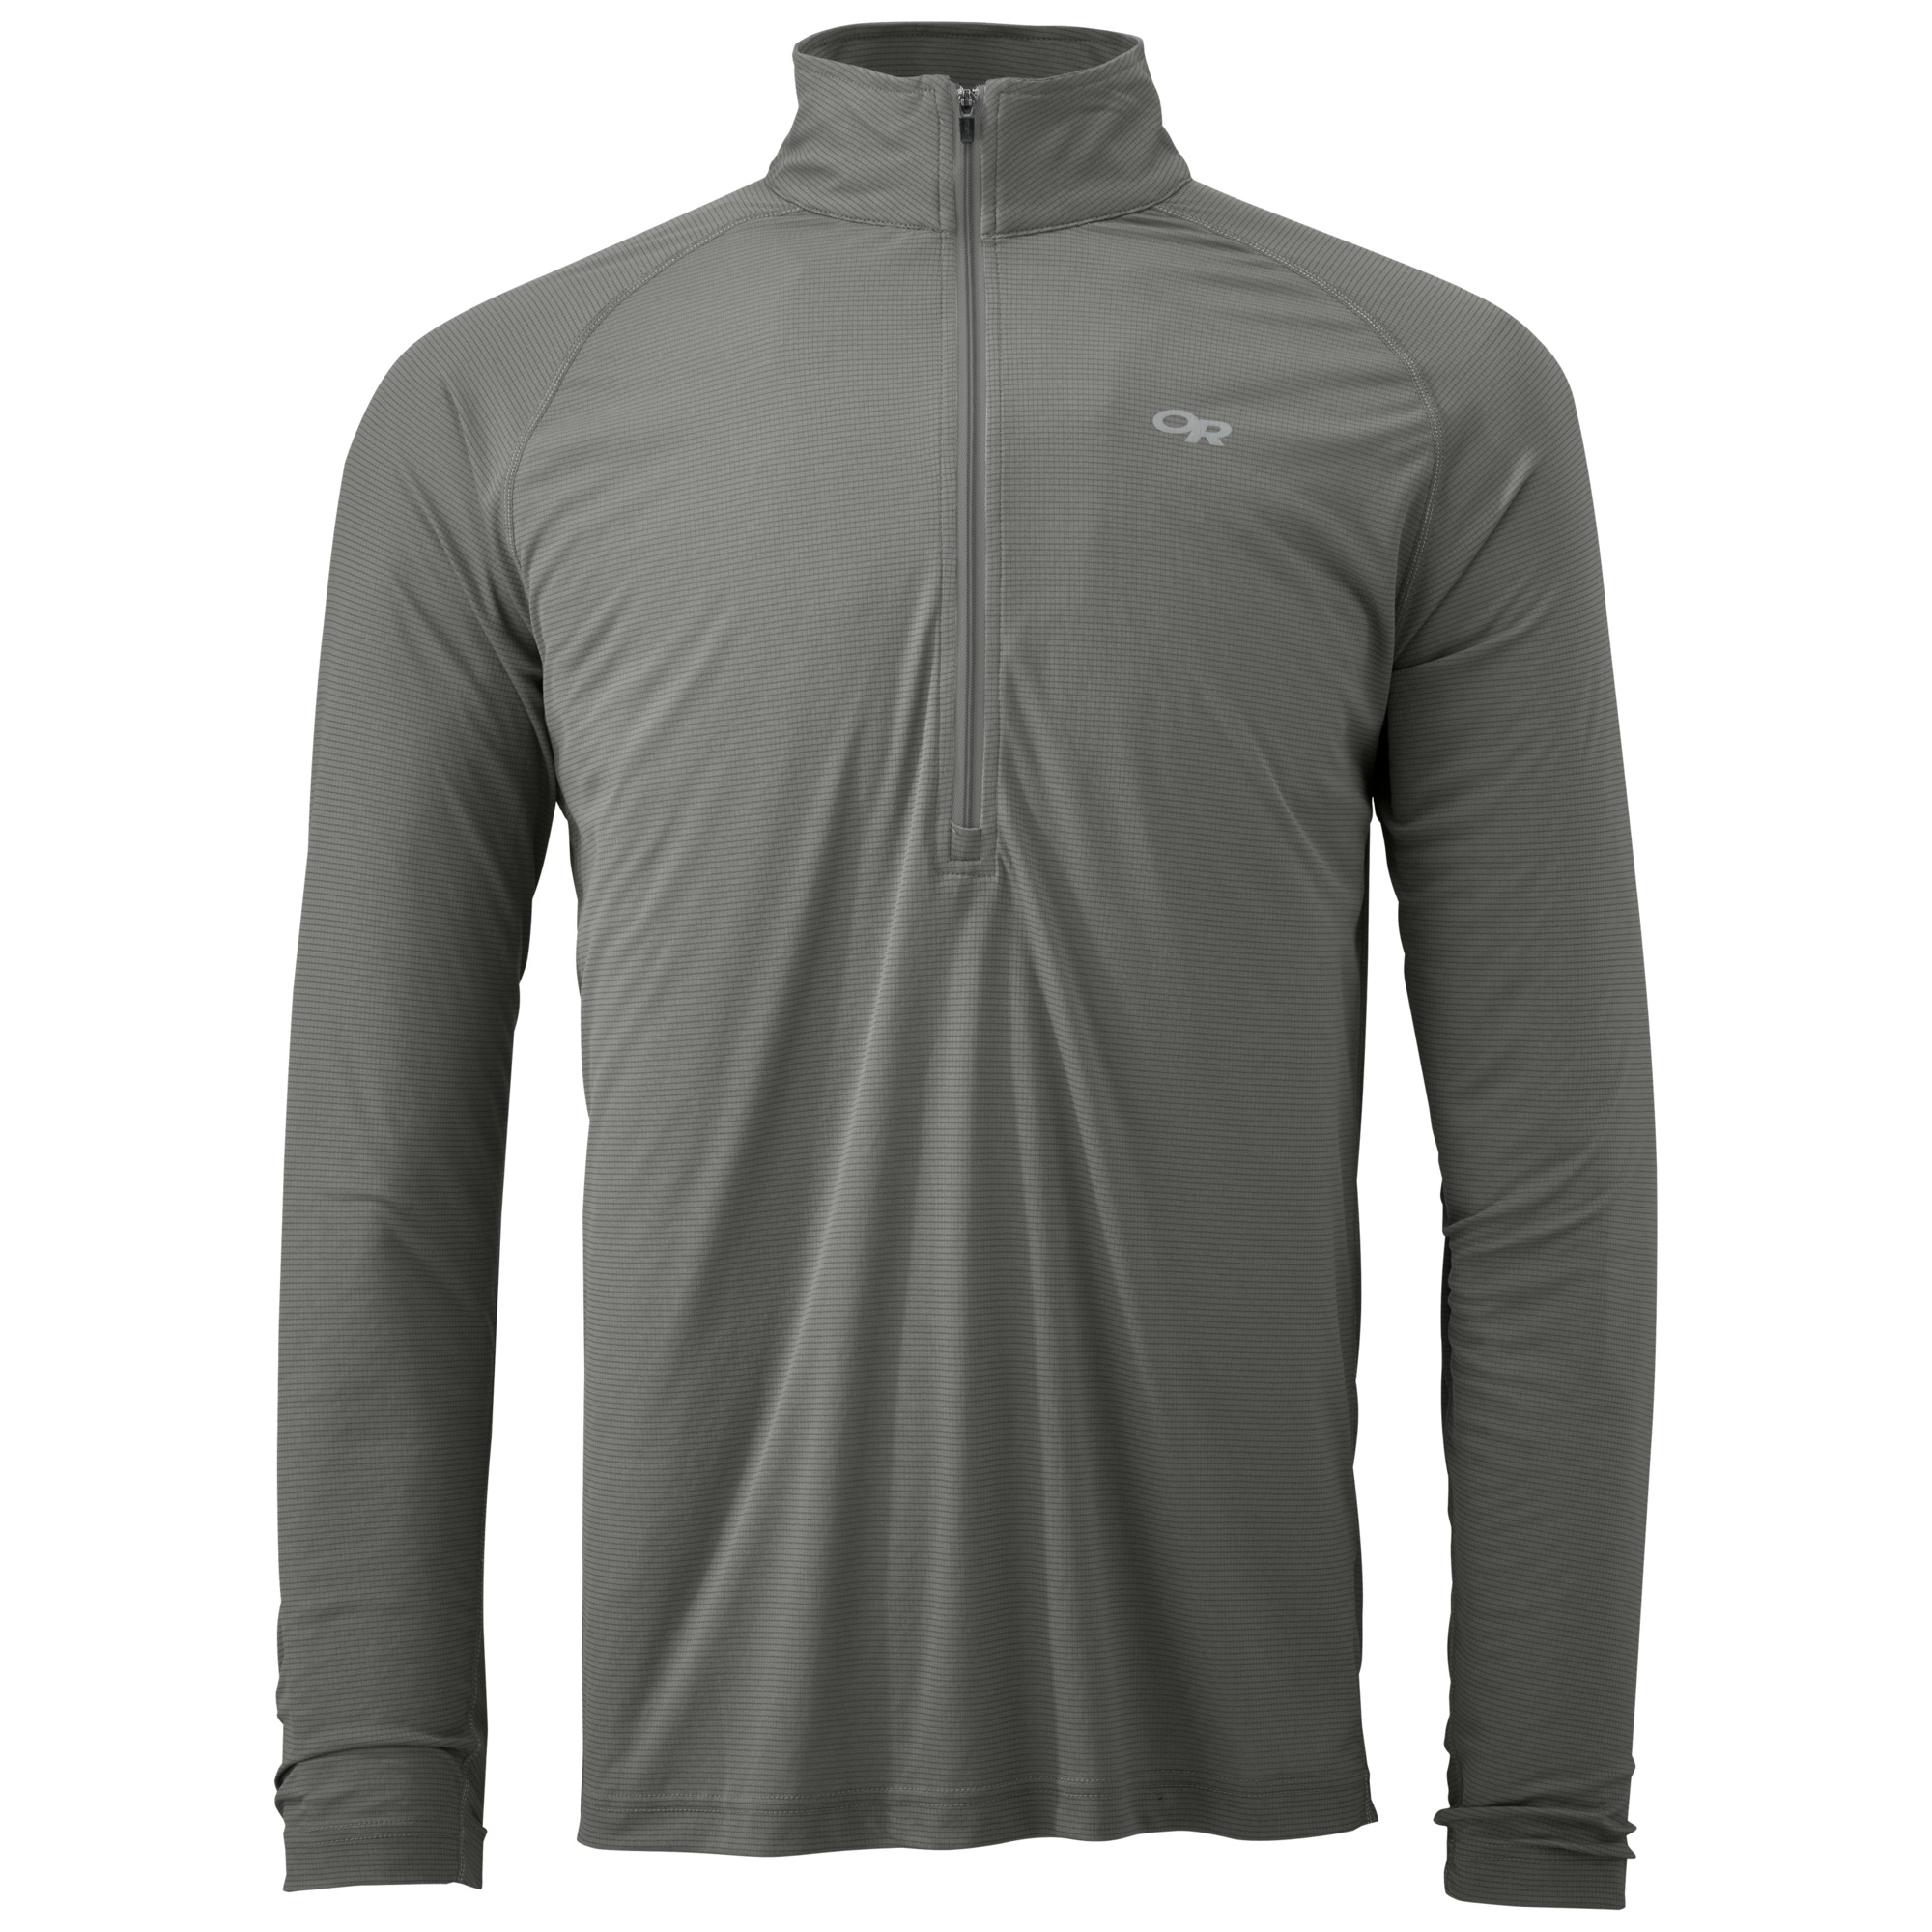 3e203326a9bb8 Men's Echo L/S Zip Tee - pewter/charcoal | Outdoor Research